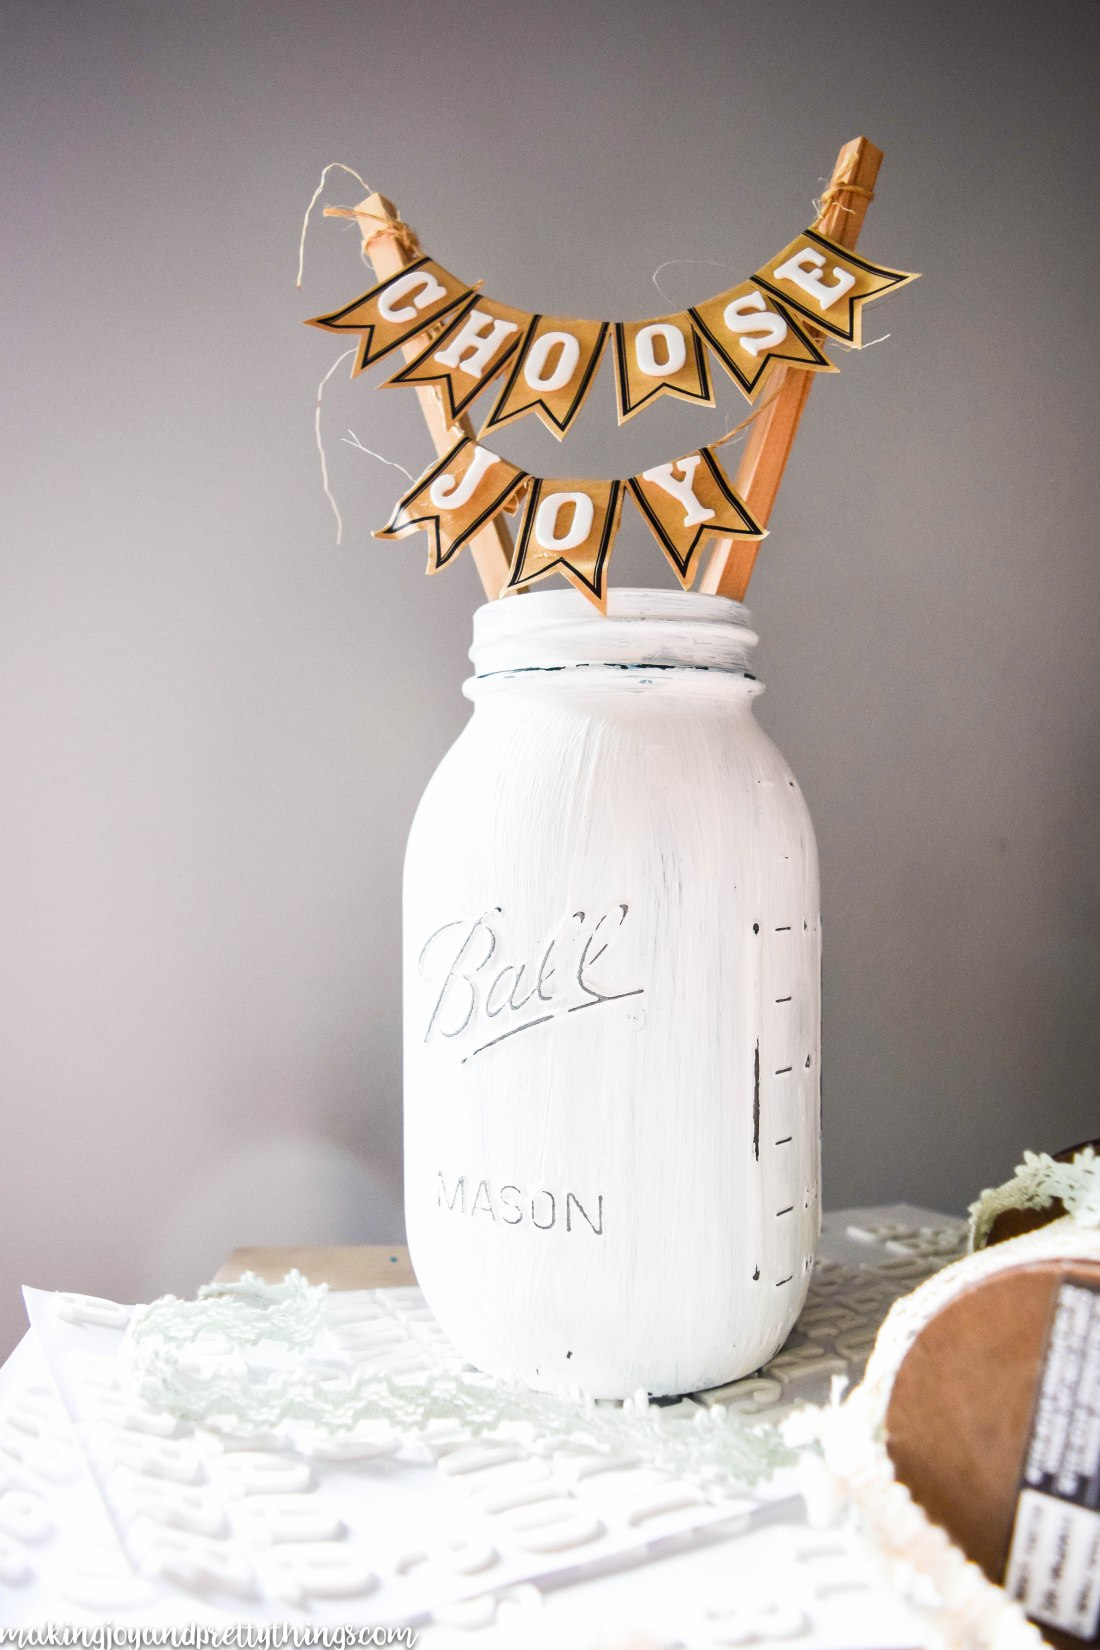 DIY farmhouse inspired mason jar display. Easy DIY craft to bring farmhouse style into your home decor. Budget friendly and sends great message.